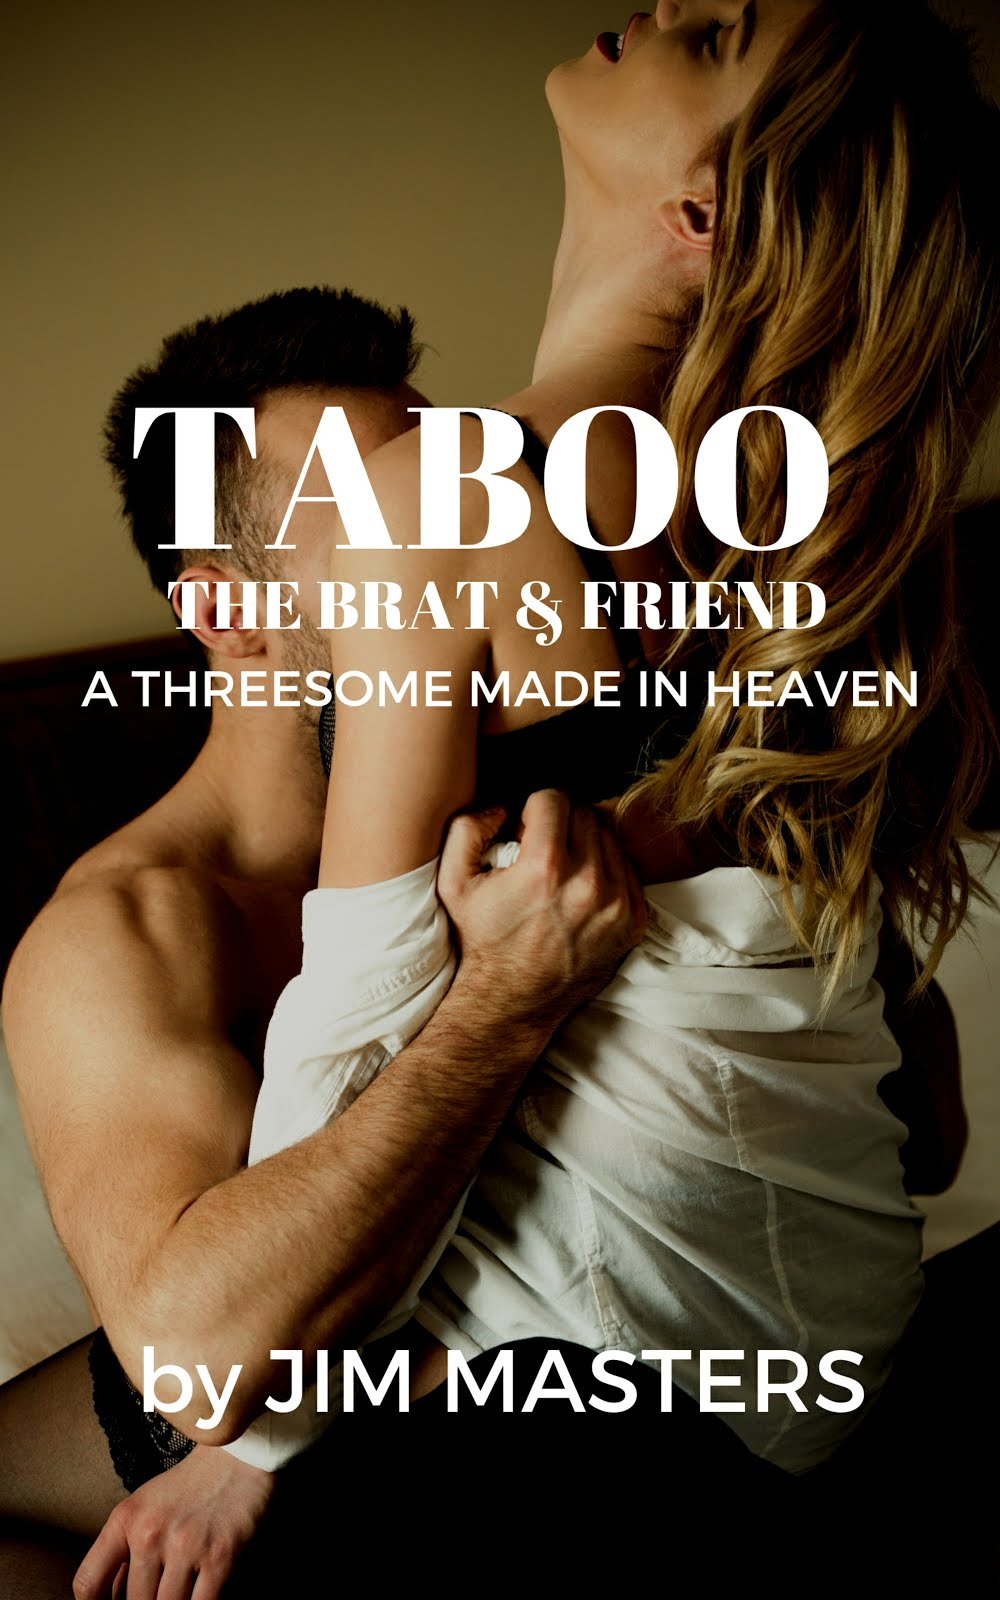 Taboo: The Brat and Friend